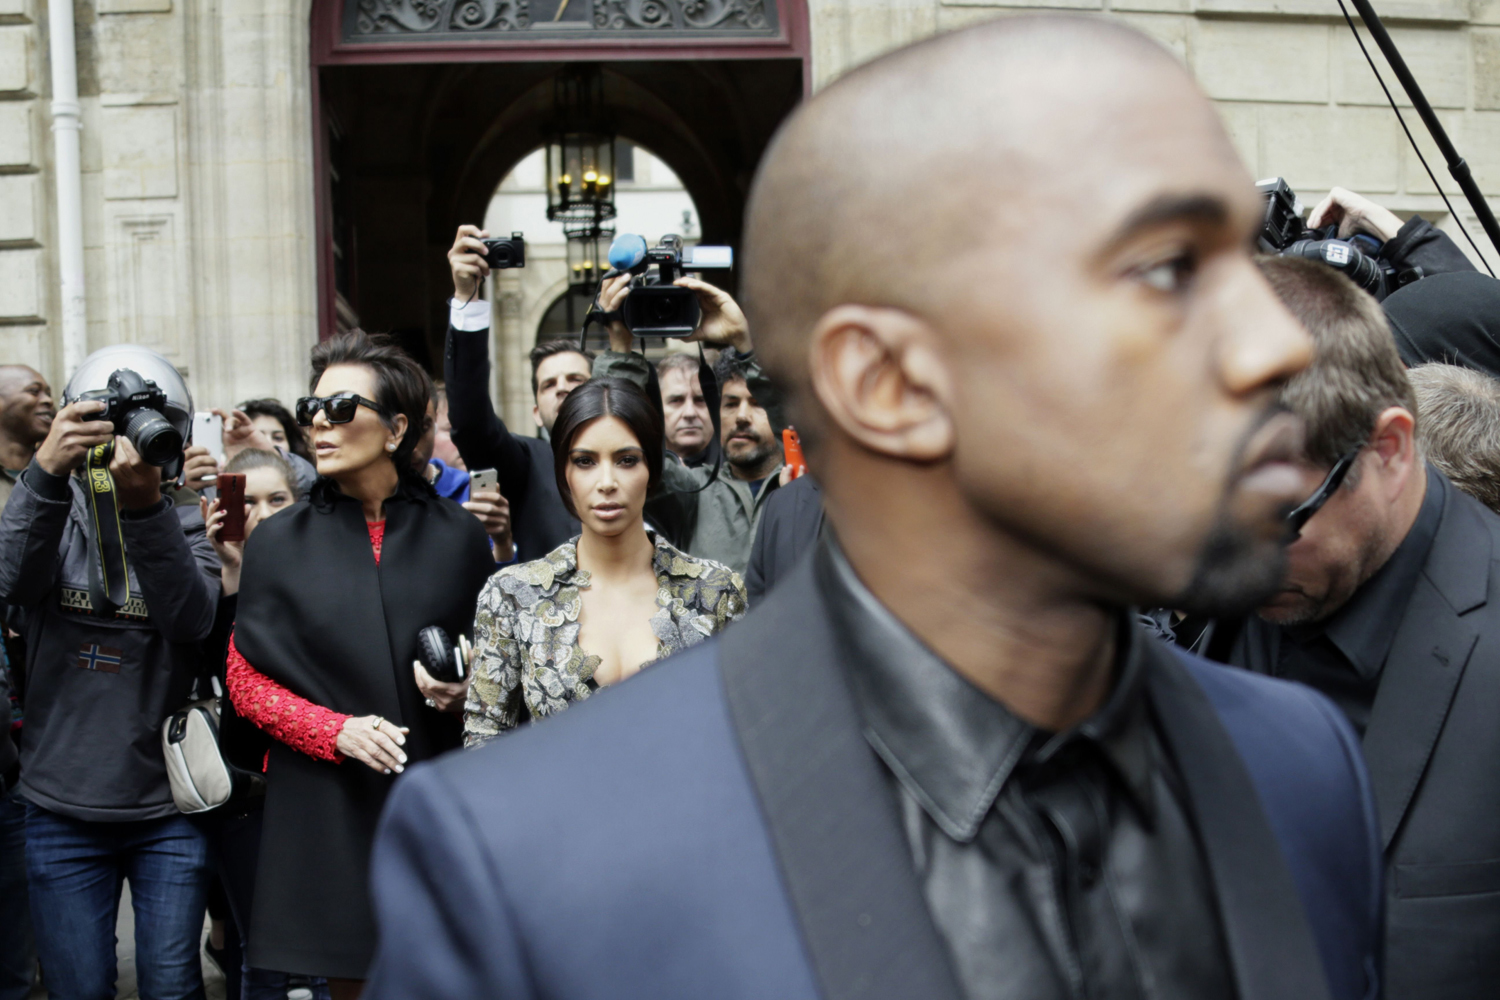 May 23, 2014. Kim Kardashian (C) pushes a stroller next to her partner Kanye West (R) and her mother Kris Jenner (2L) as they leave their hotel in Paris.